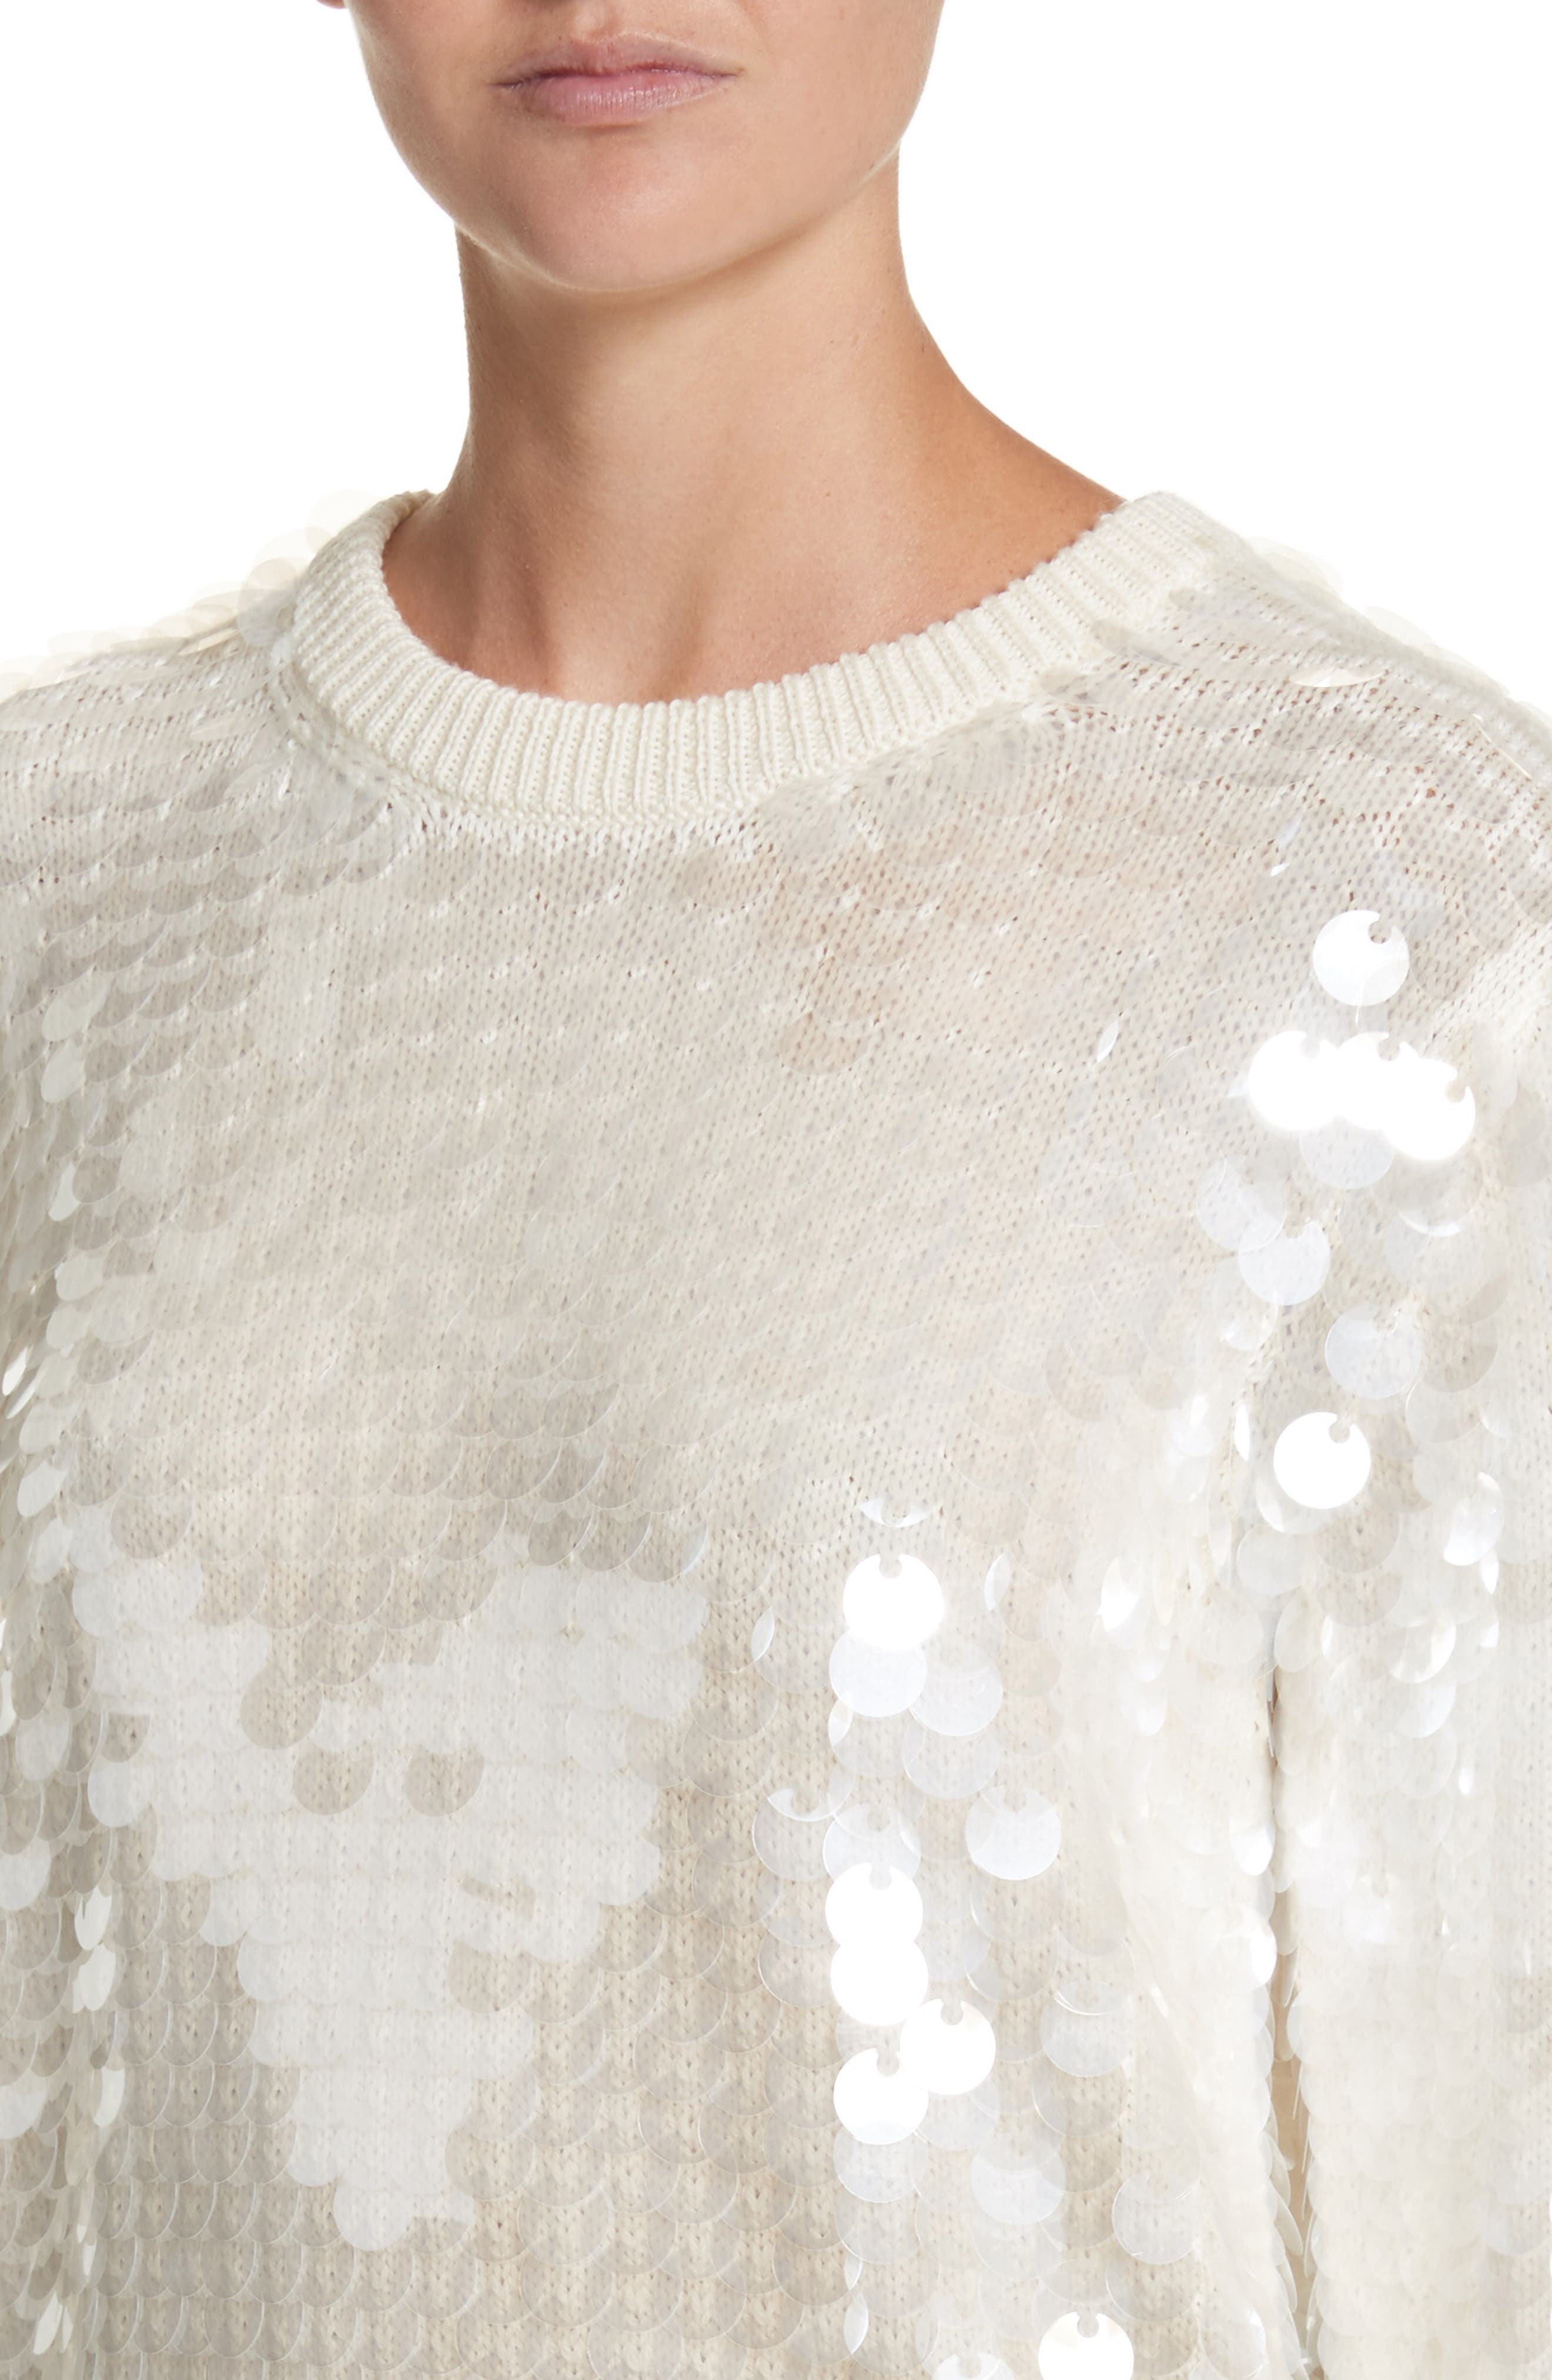 Sequin Wool Sweater,                             Alternate thumbnail 4, color,